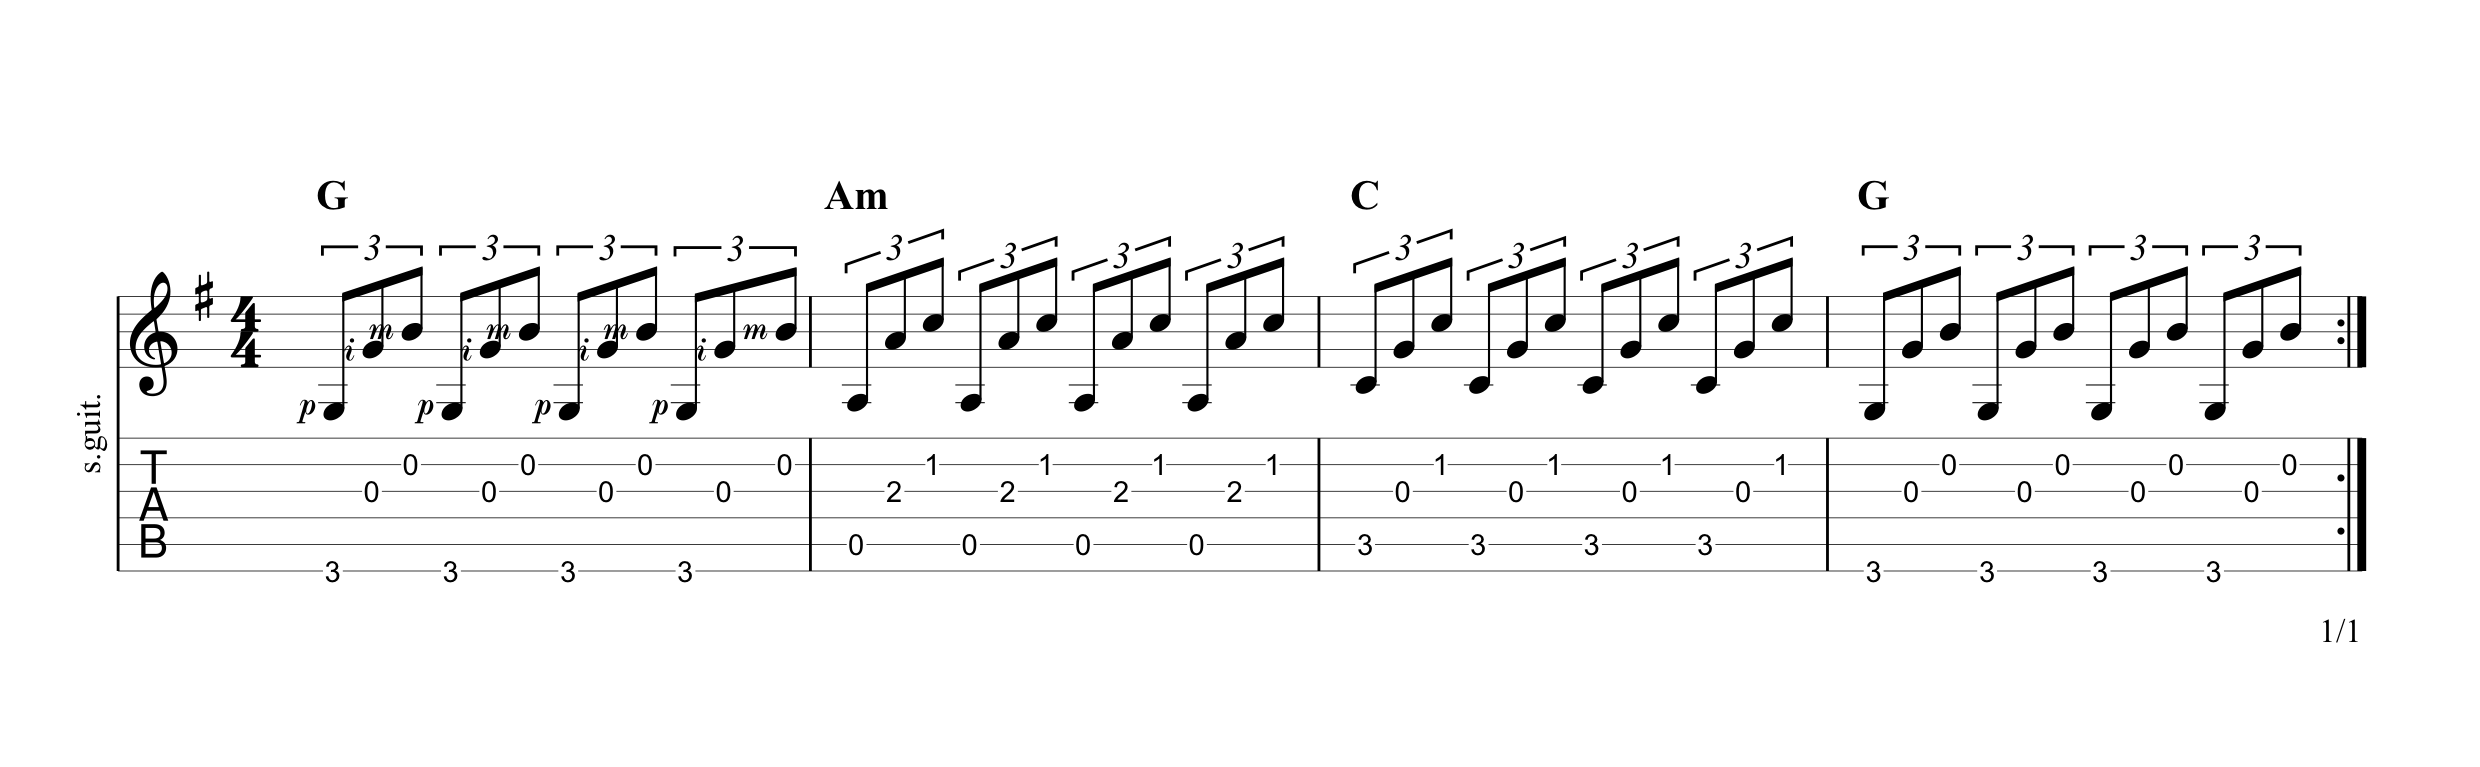 Fingerpicking Pattern 3